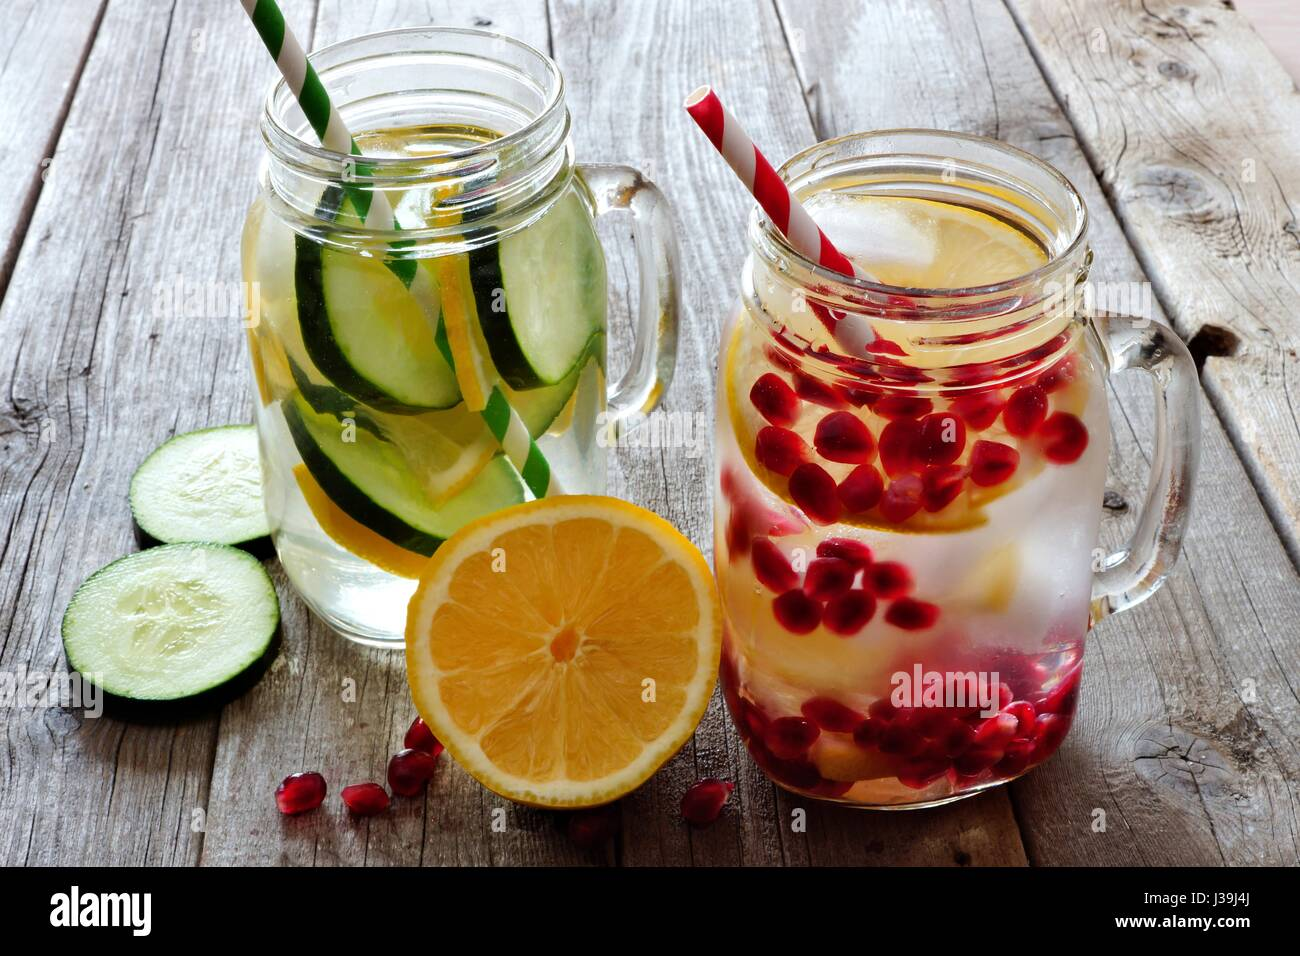 Detox water in mason jar glasses with lemon, cucumber and pomegranate against a rustic wood background - Stock Image